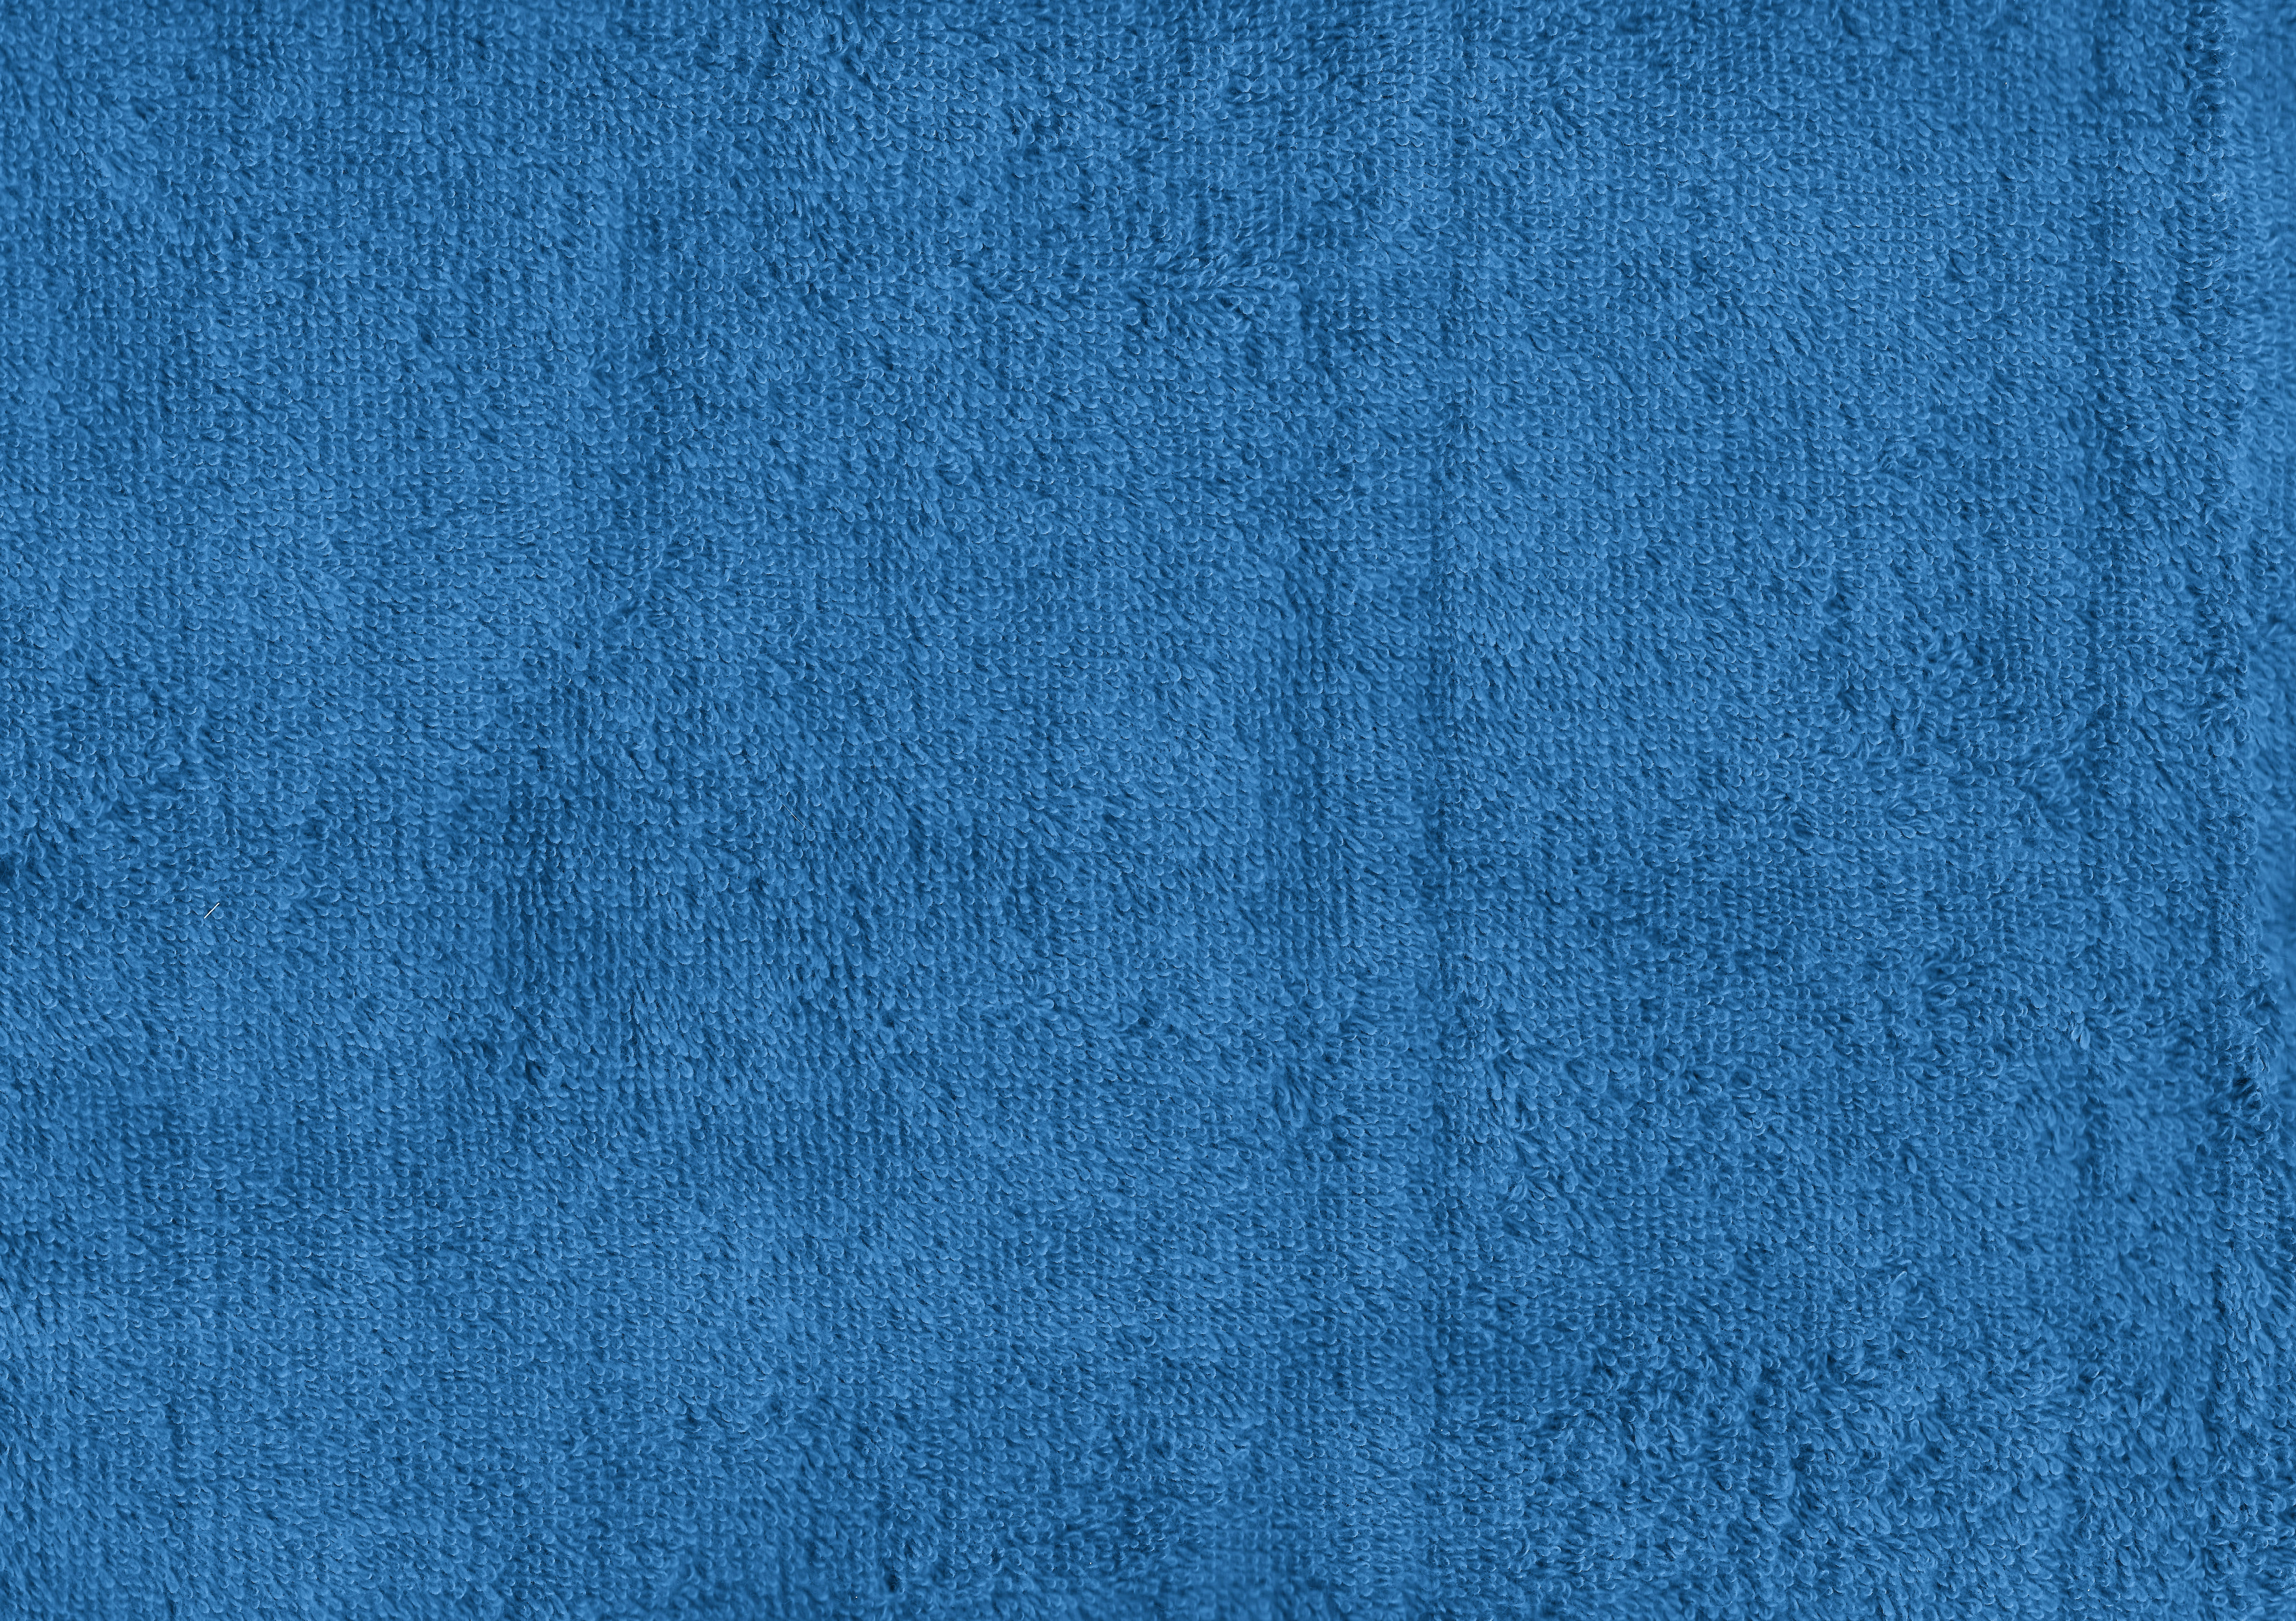 Azure Blue Terry Cloth Towel Texture Picture Free